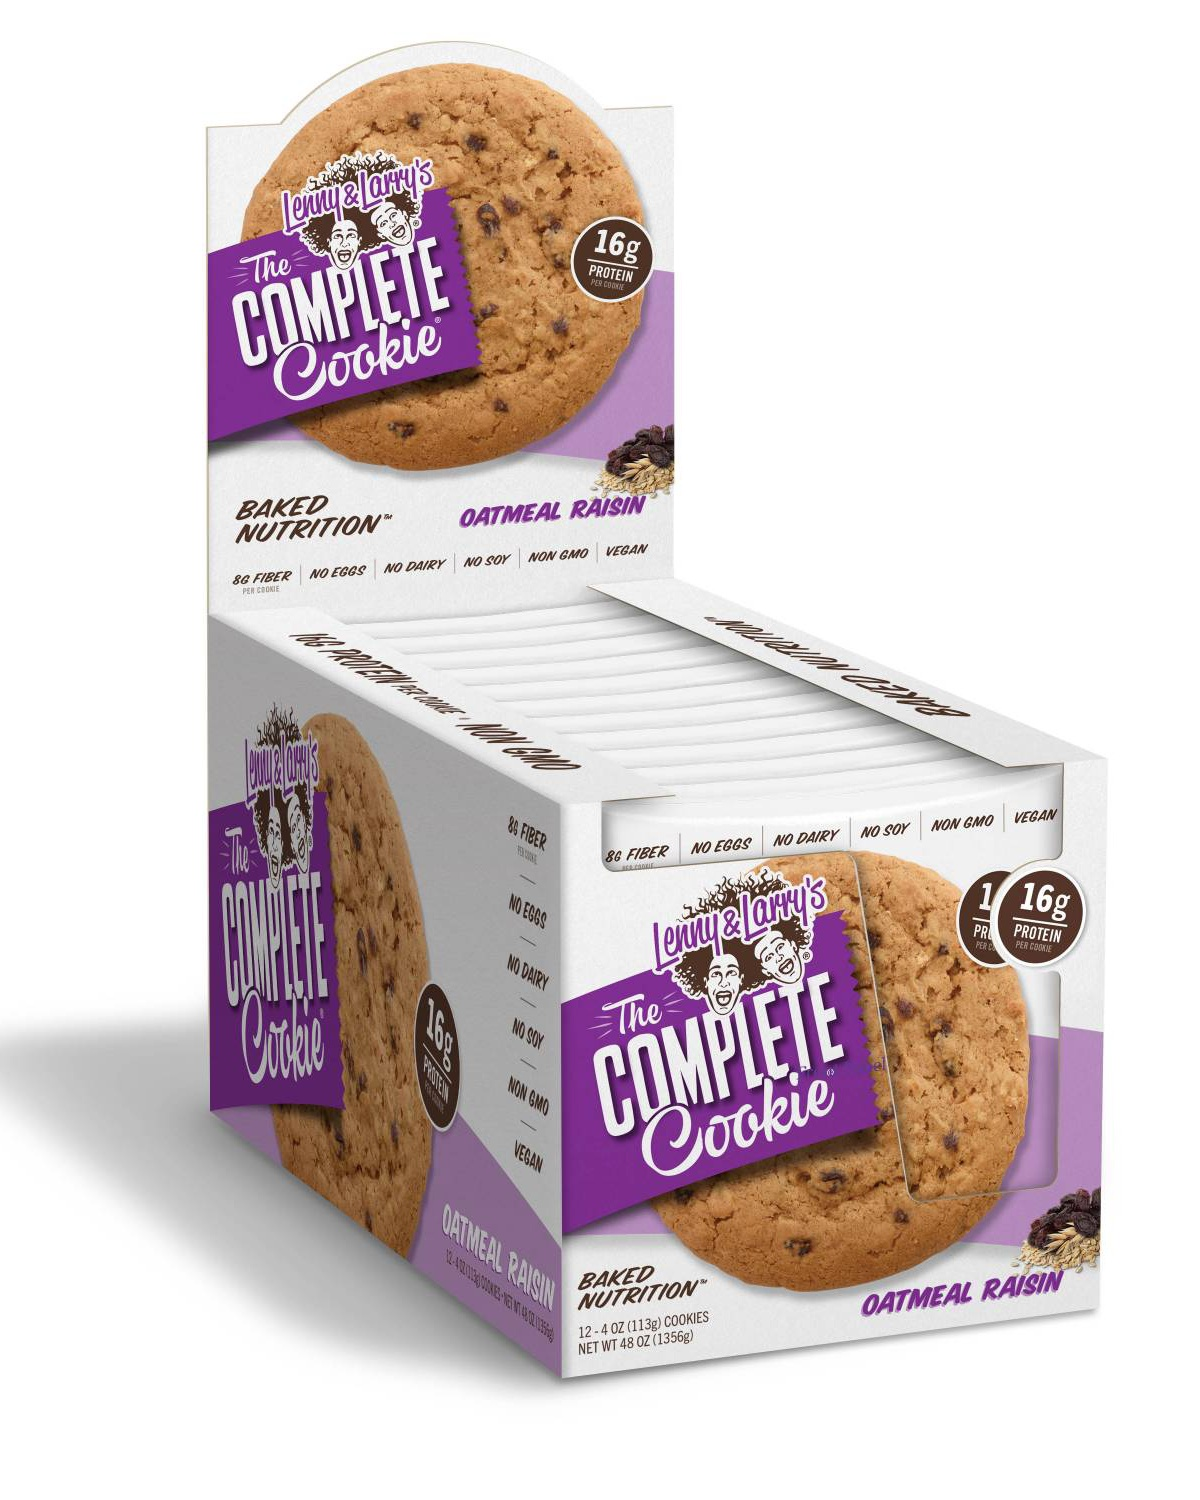 the-oatmeal-raisin-complete-cookie-15-98-high